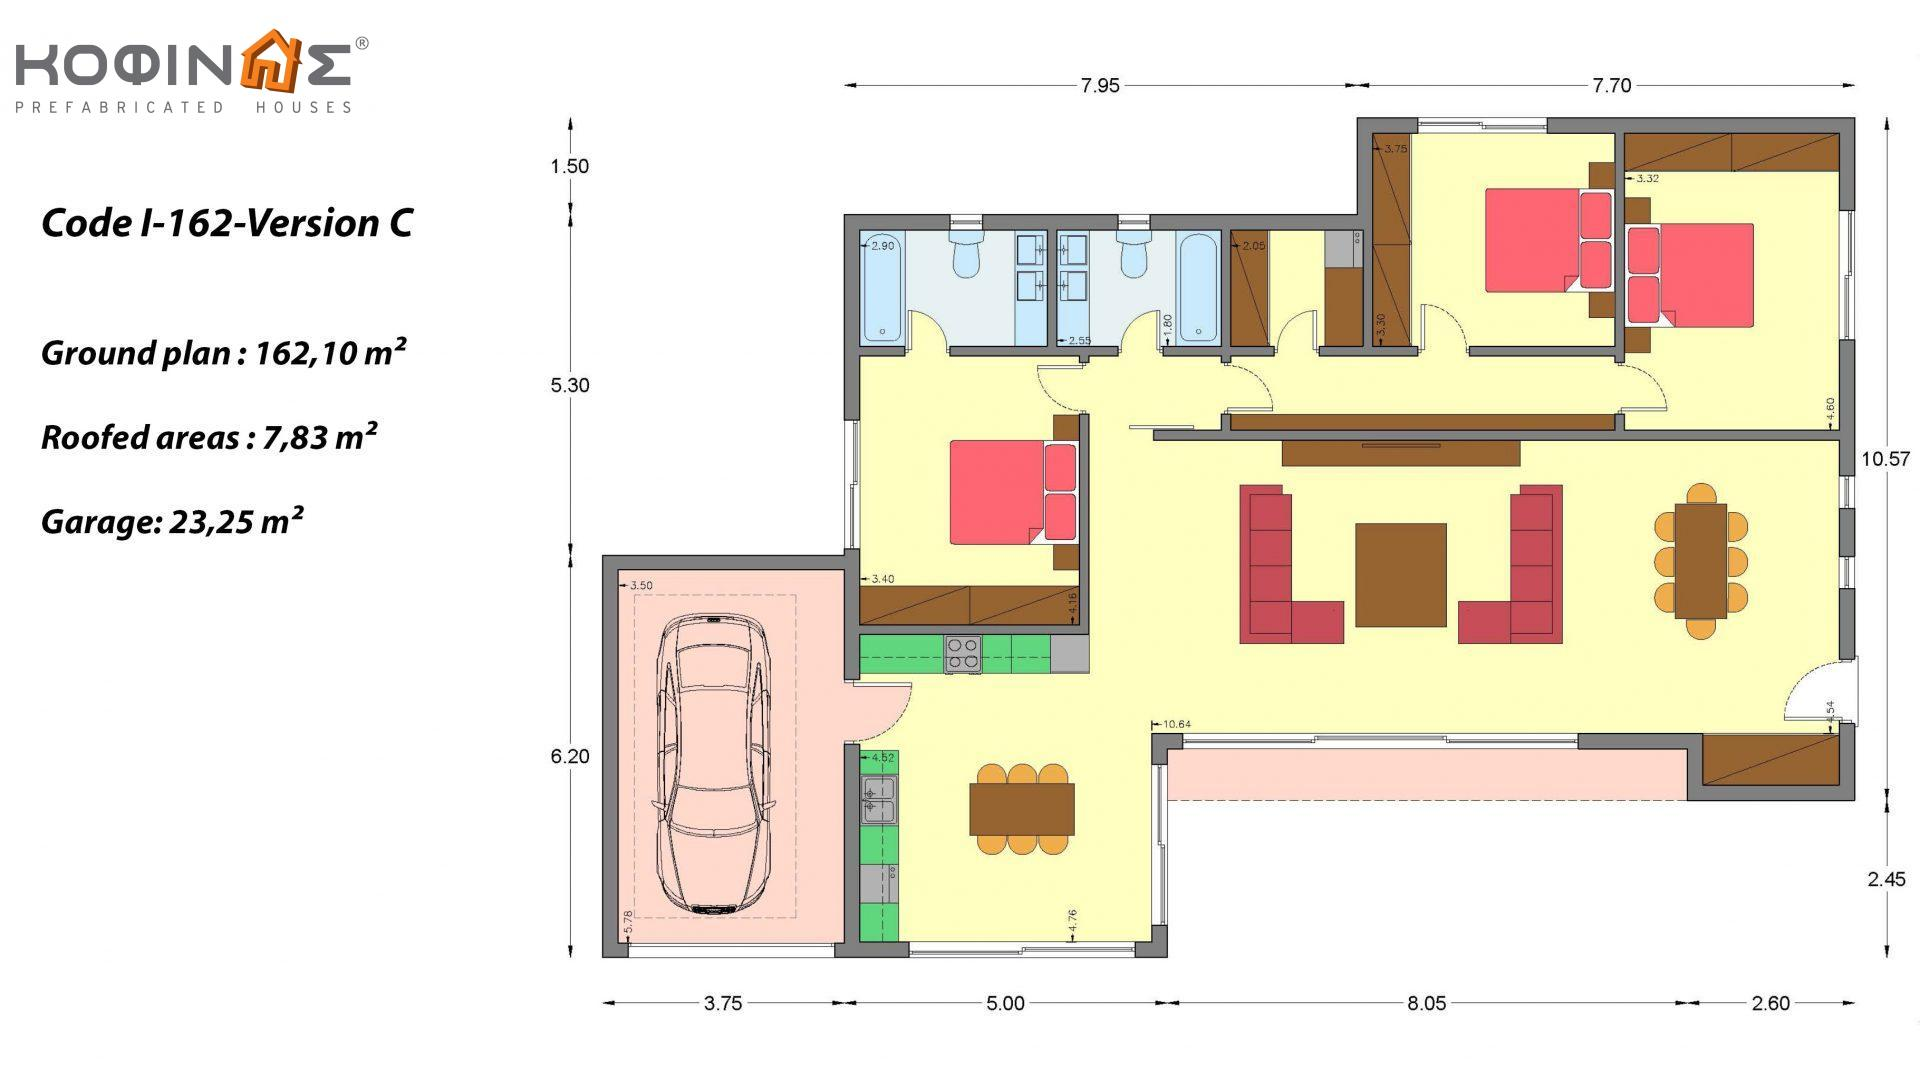 1-story house I-162, total surface of 162,10 m², roofed areas 7,83 m²